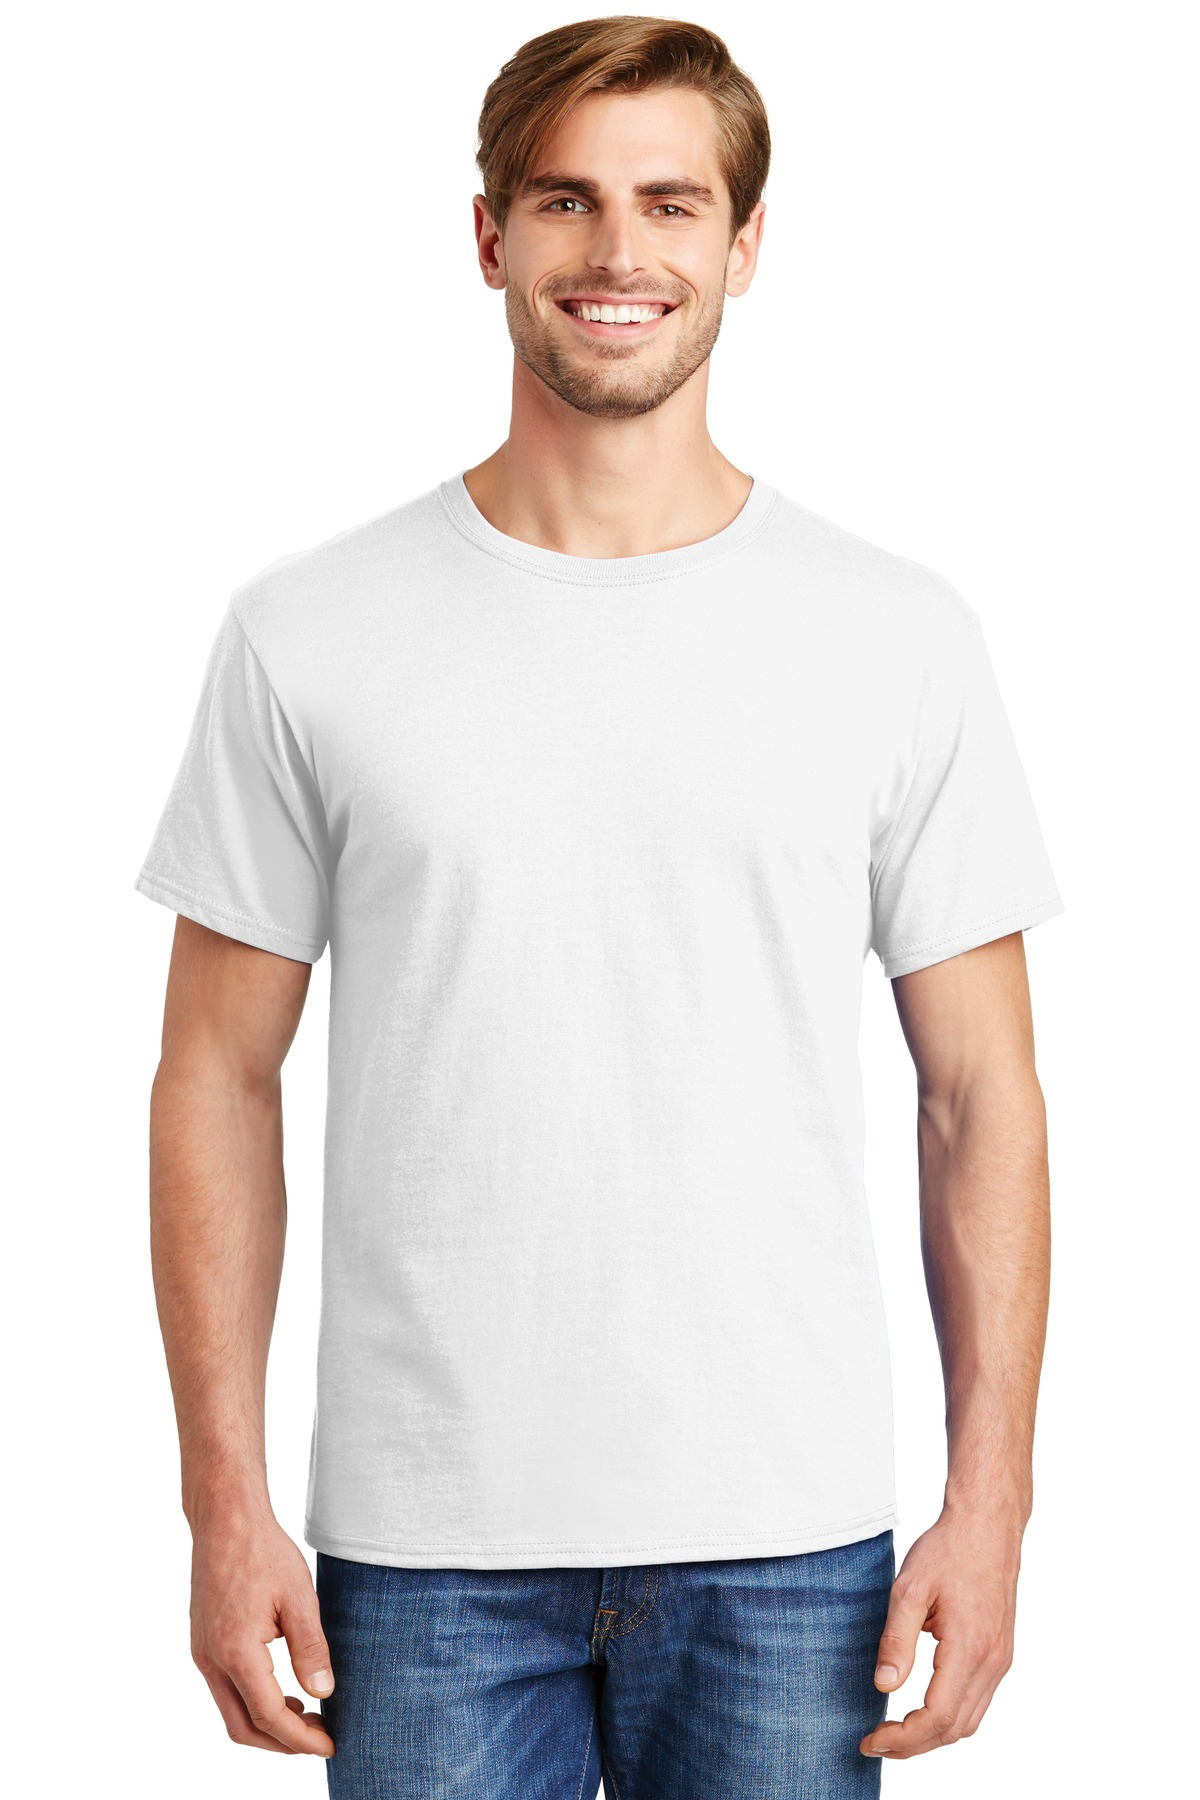 Hanes ®  - ComfortSoft ®  100%  Cotton T-Shirt.  5280 - White